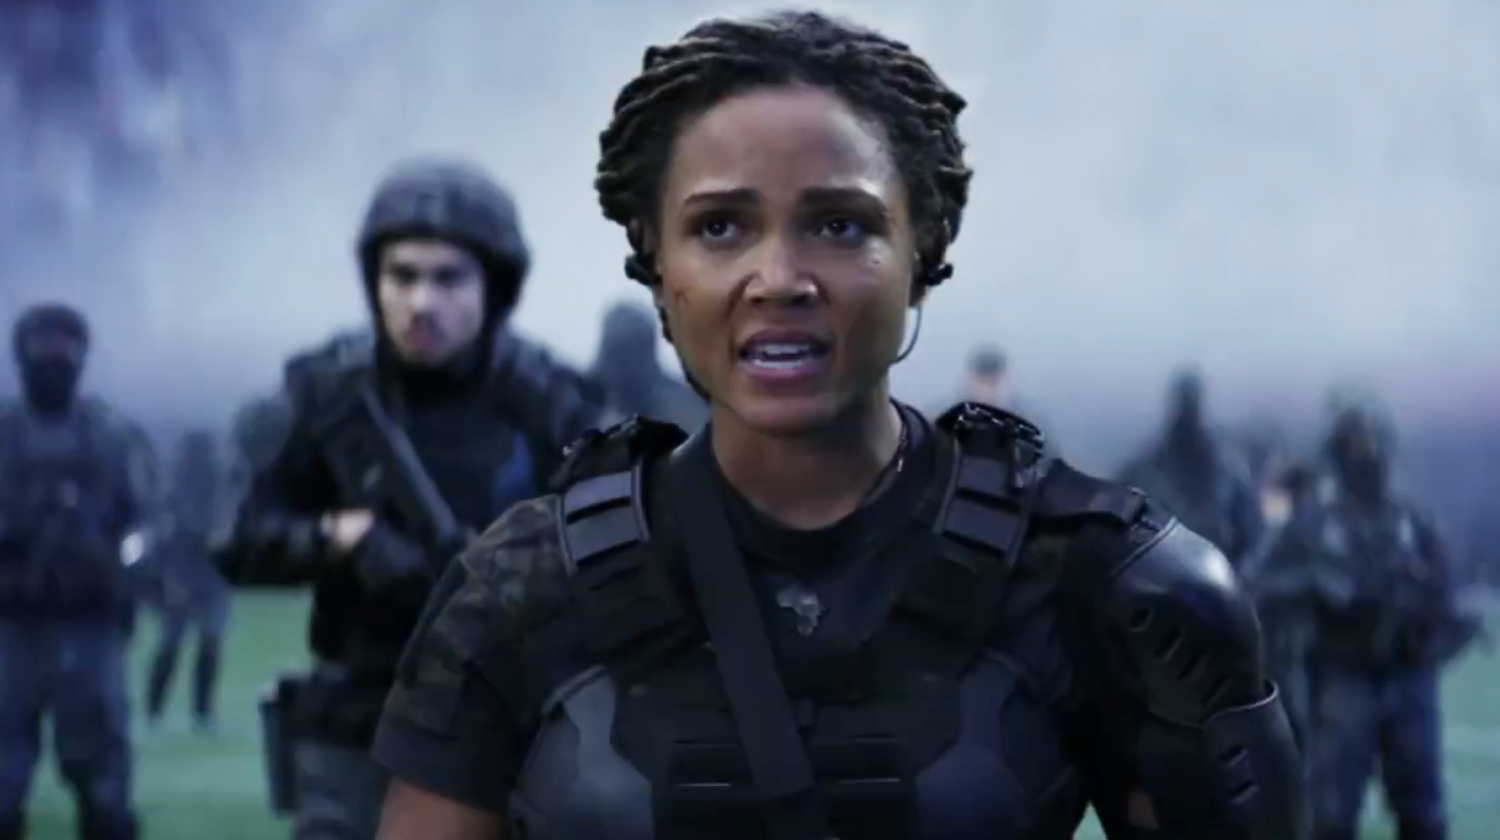 Watch the full trailer for sci-fi thriller 'The Tomorrow War' on Amazon Prime thumbnail